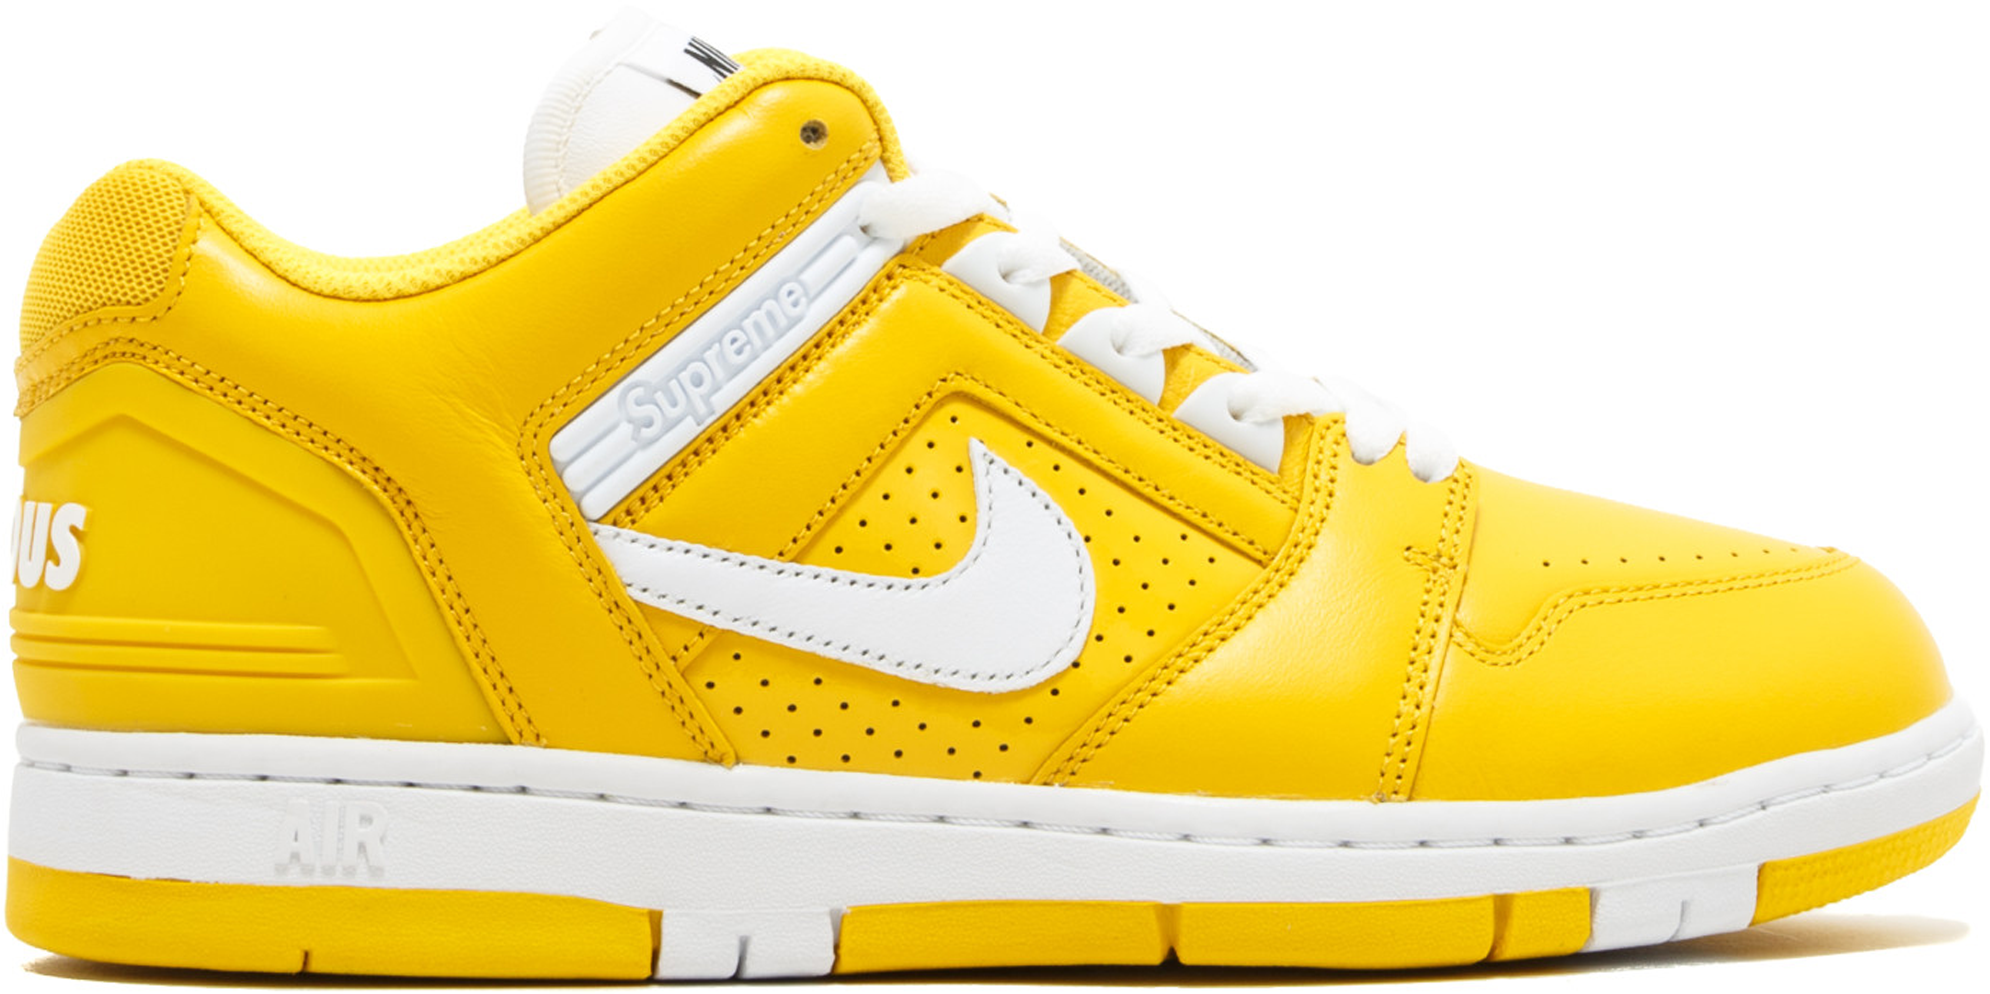 Nike SB Air Force 2 Low Supreme Yellow